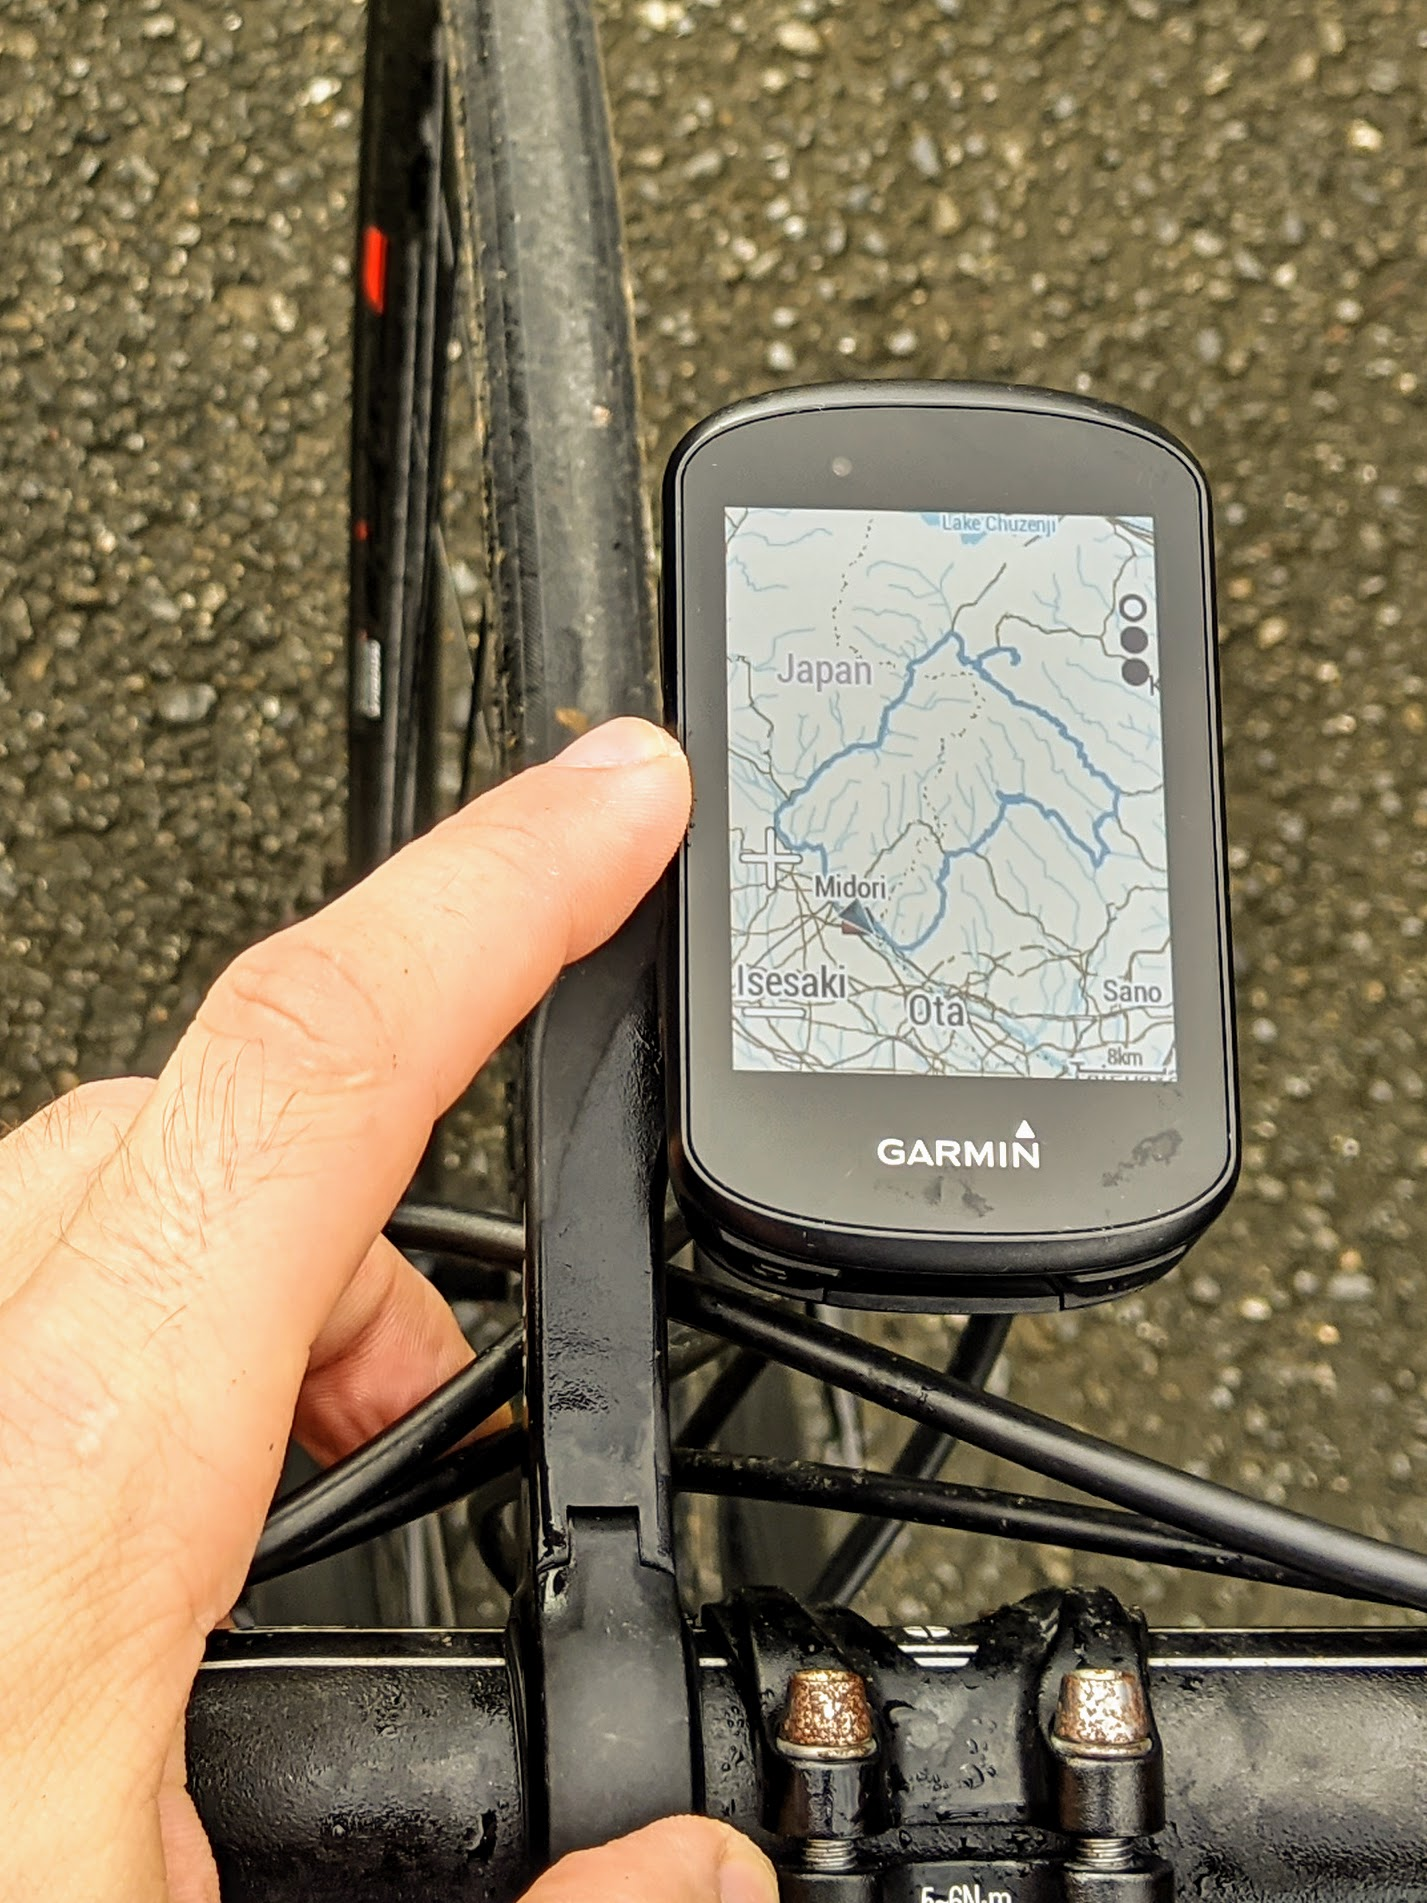 Garmin Computers for easy GPS Navigation while Cycling